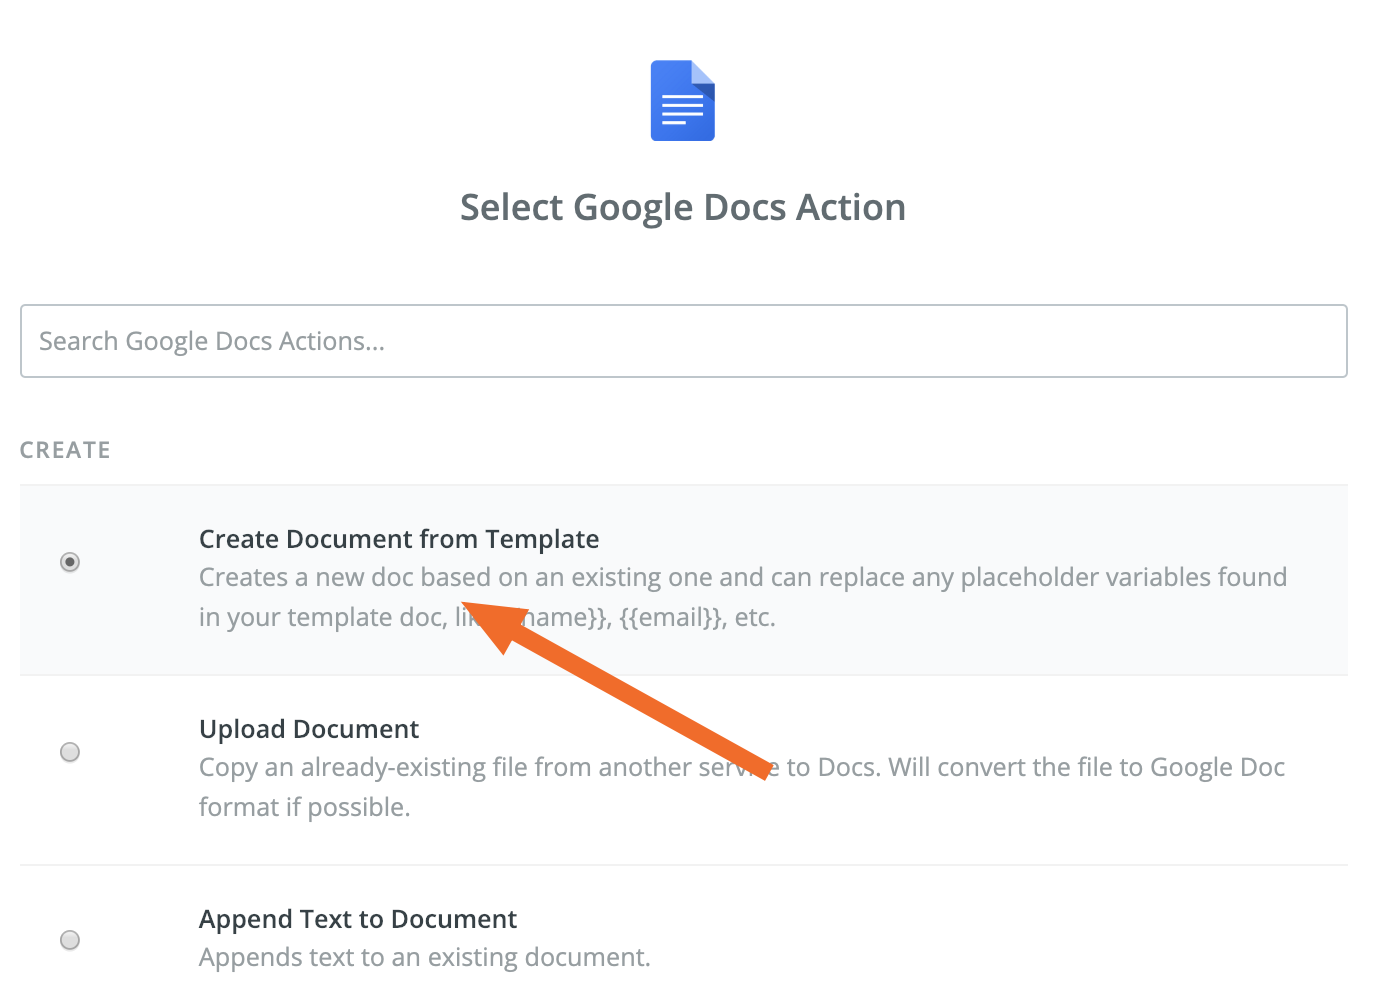 Create document from template